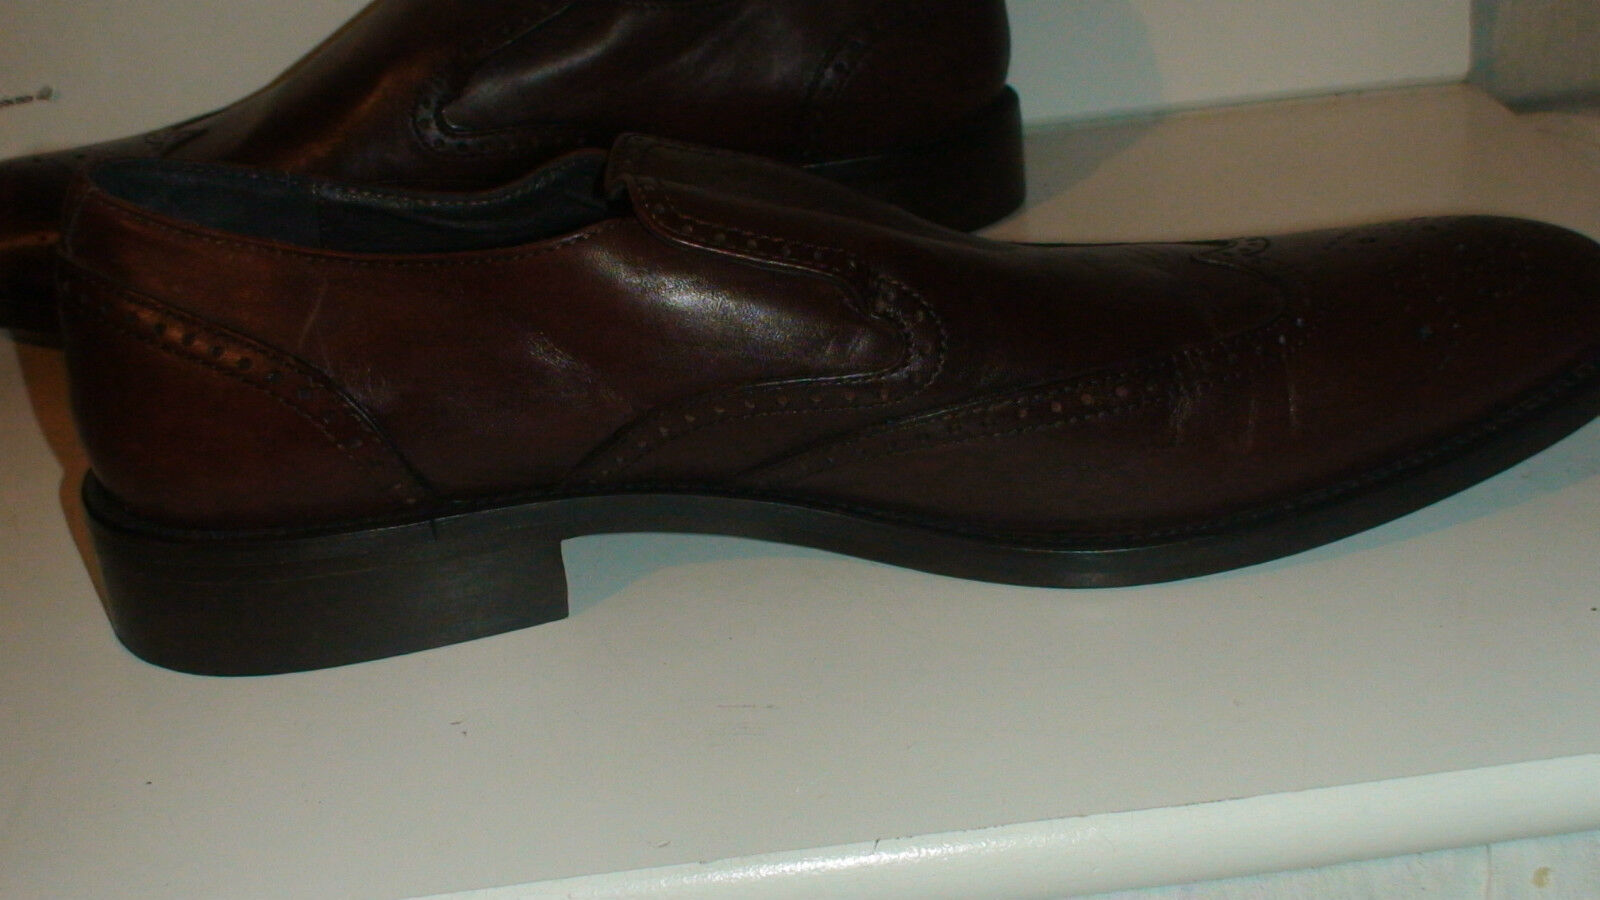 MIKE KONOS DRESS OXFORD OXFORD OXFORD LOAFERS SZE 45 ALL LEATHER -ITAY  235 RETL ce2f56